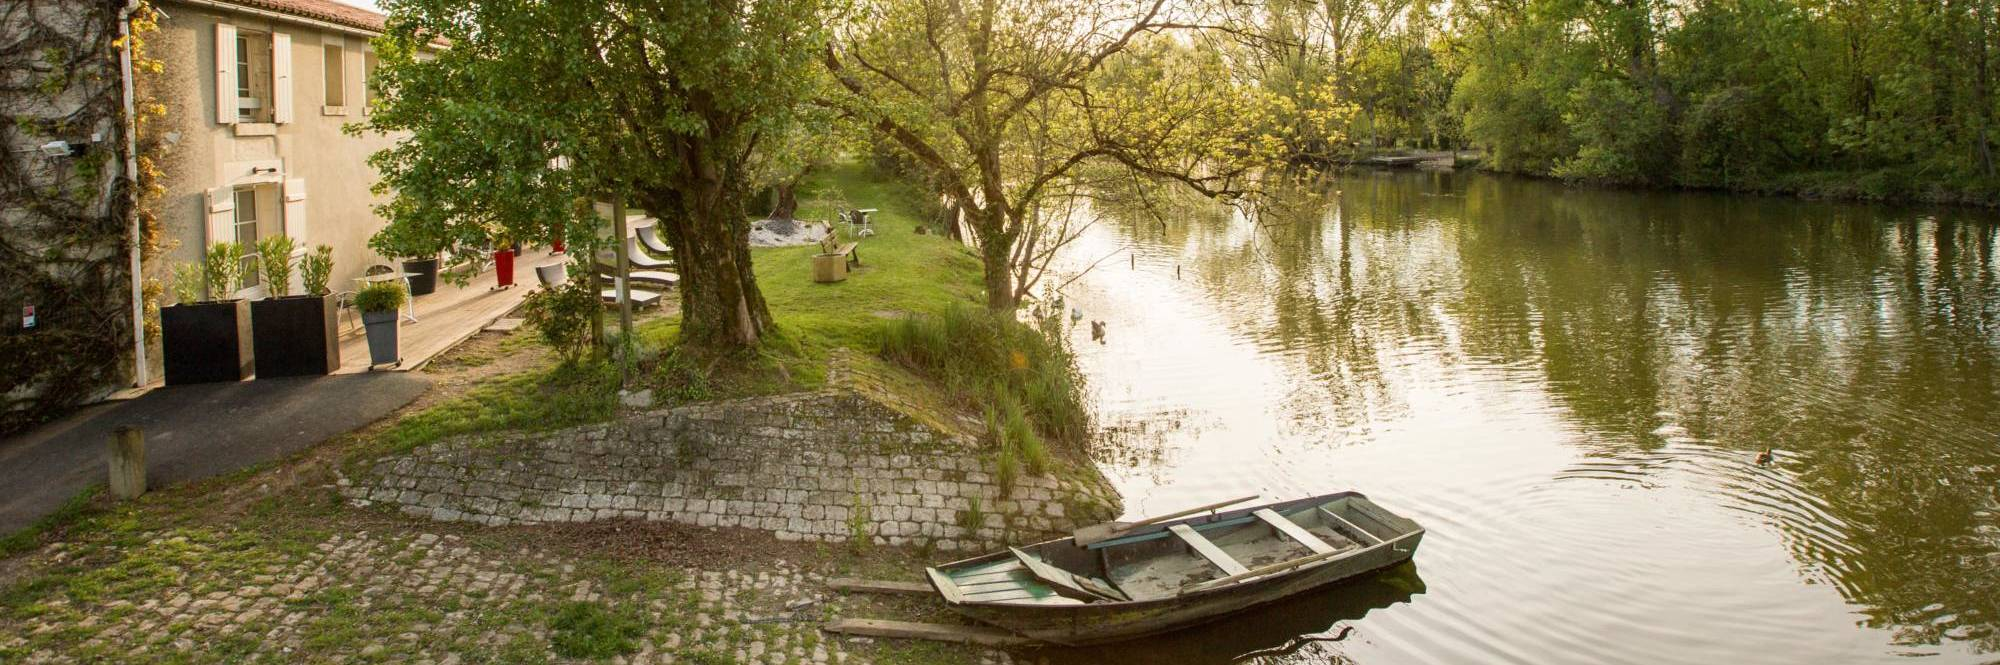 Choose your accommodation for your holidays in the Marais poitevin